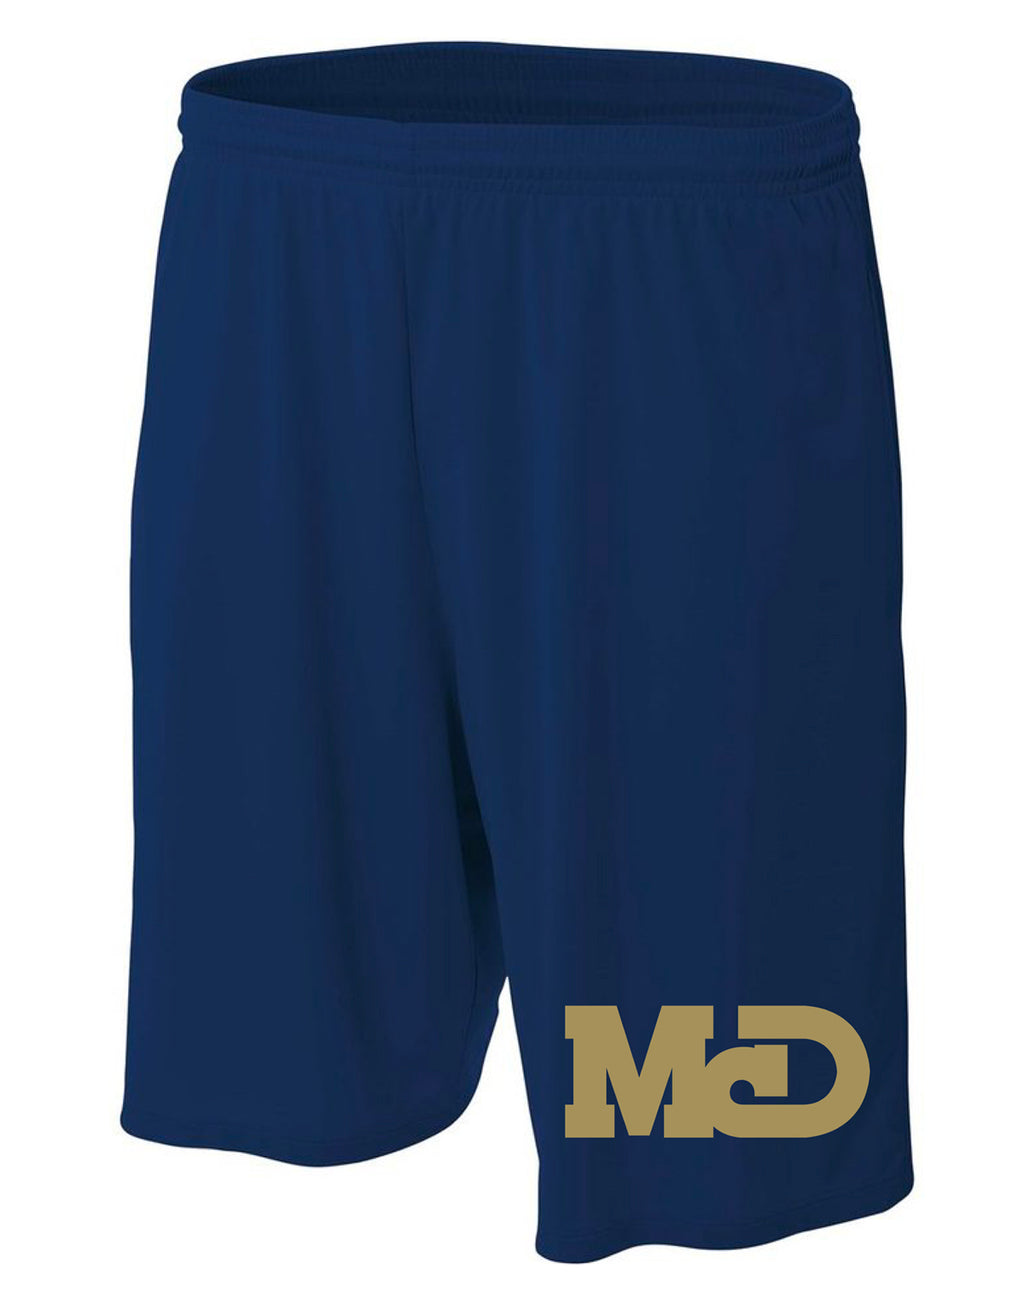 MCD NAVY LOGO ATHLETIC SHORTS